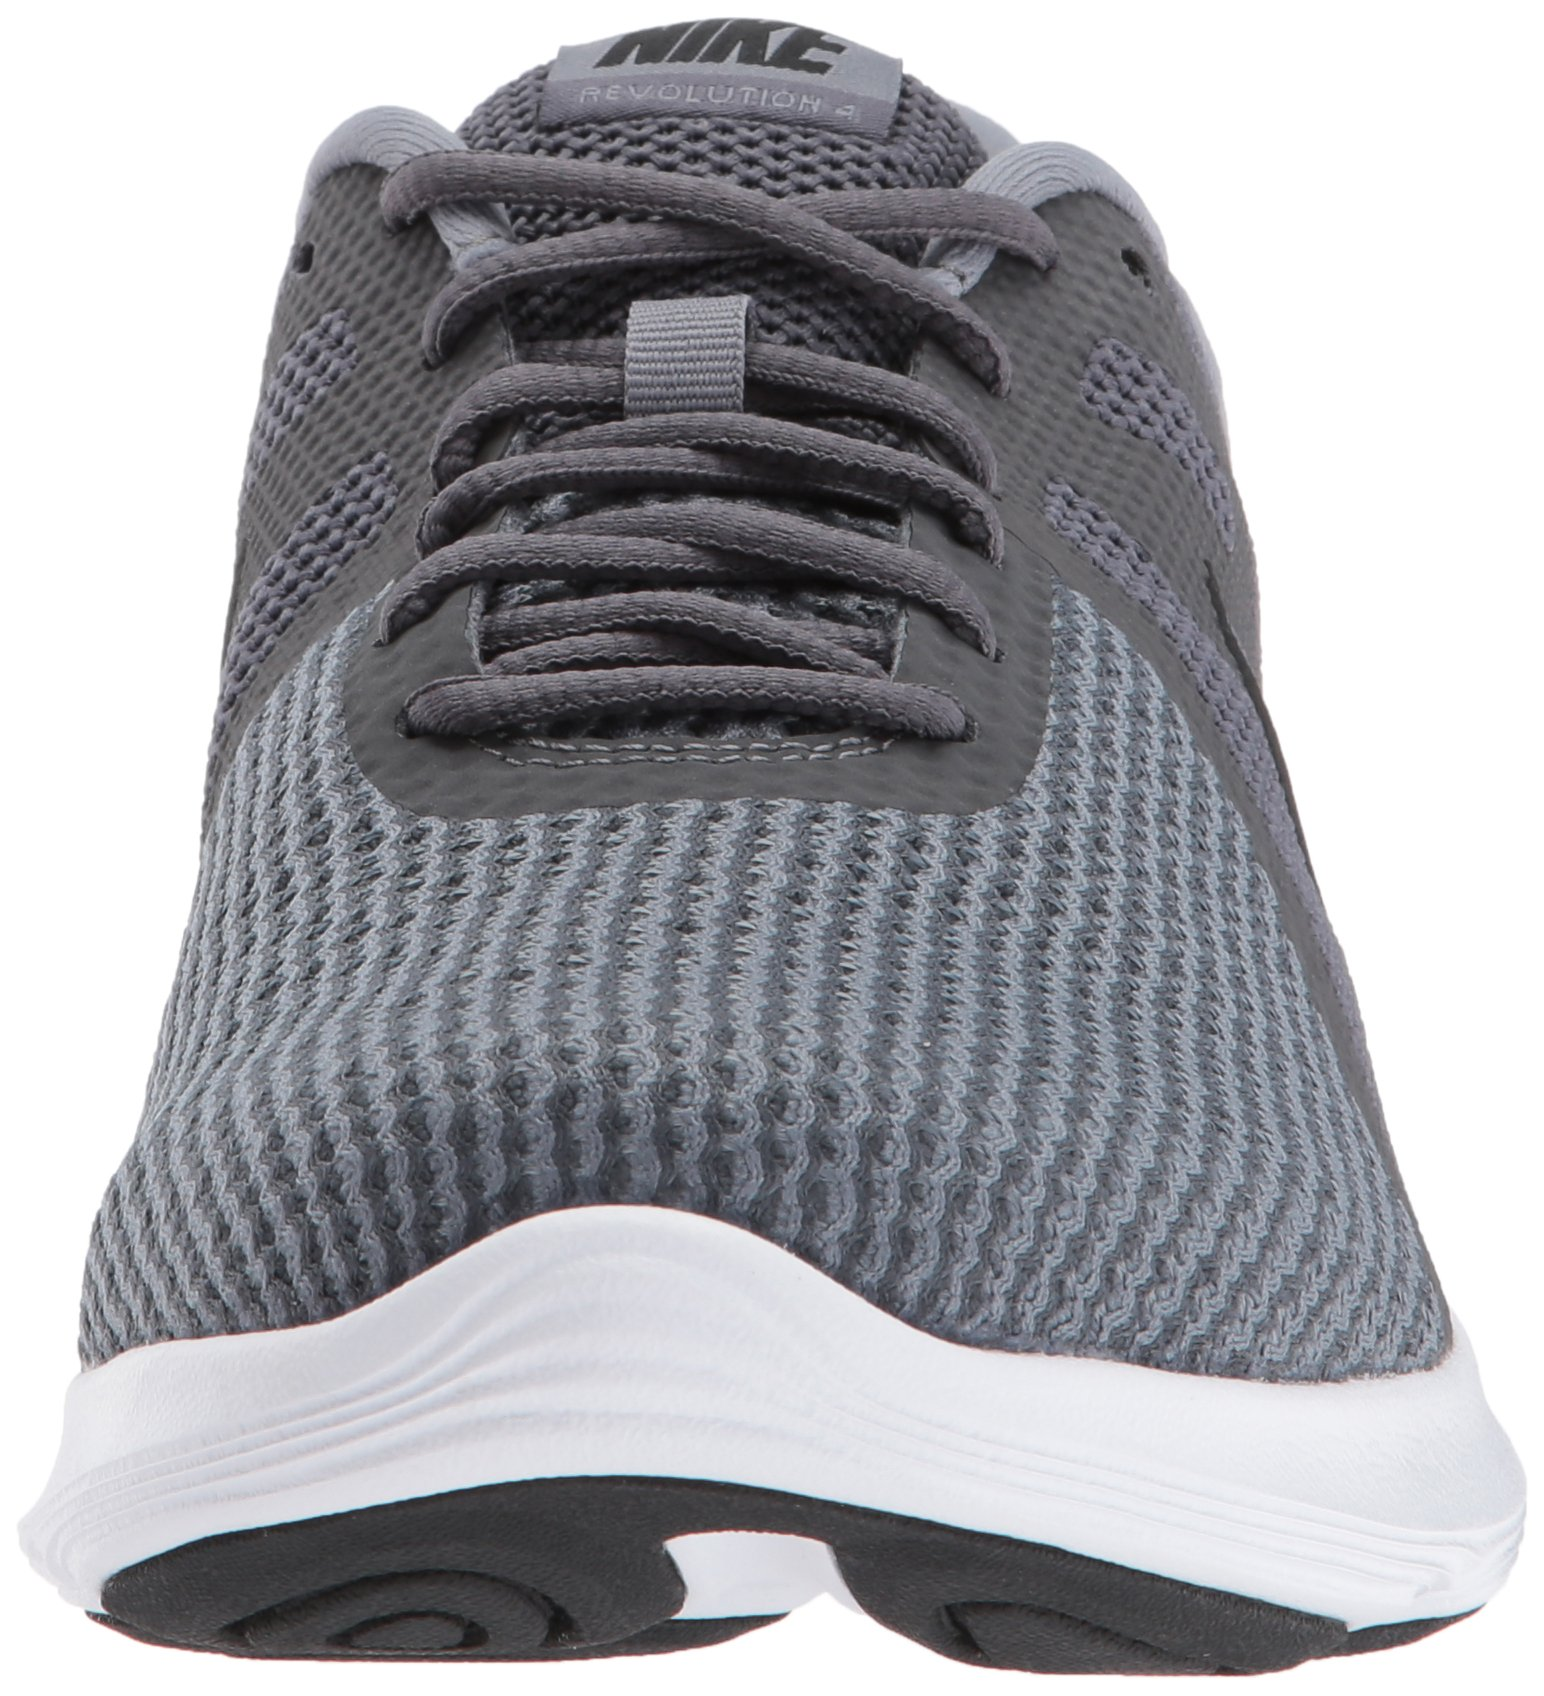 Nike Men's Revolution 4 Running Shoe, Dark Black-Cool Grey/White, 6 Regular US by Nike (Image #4)